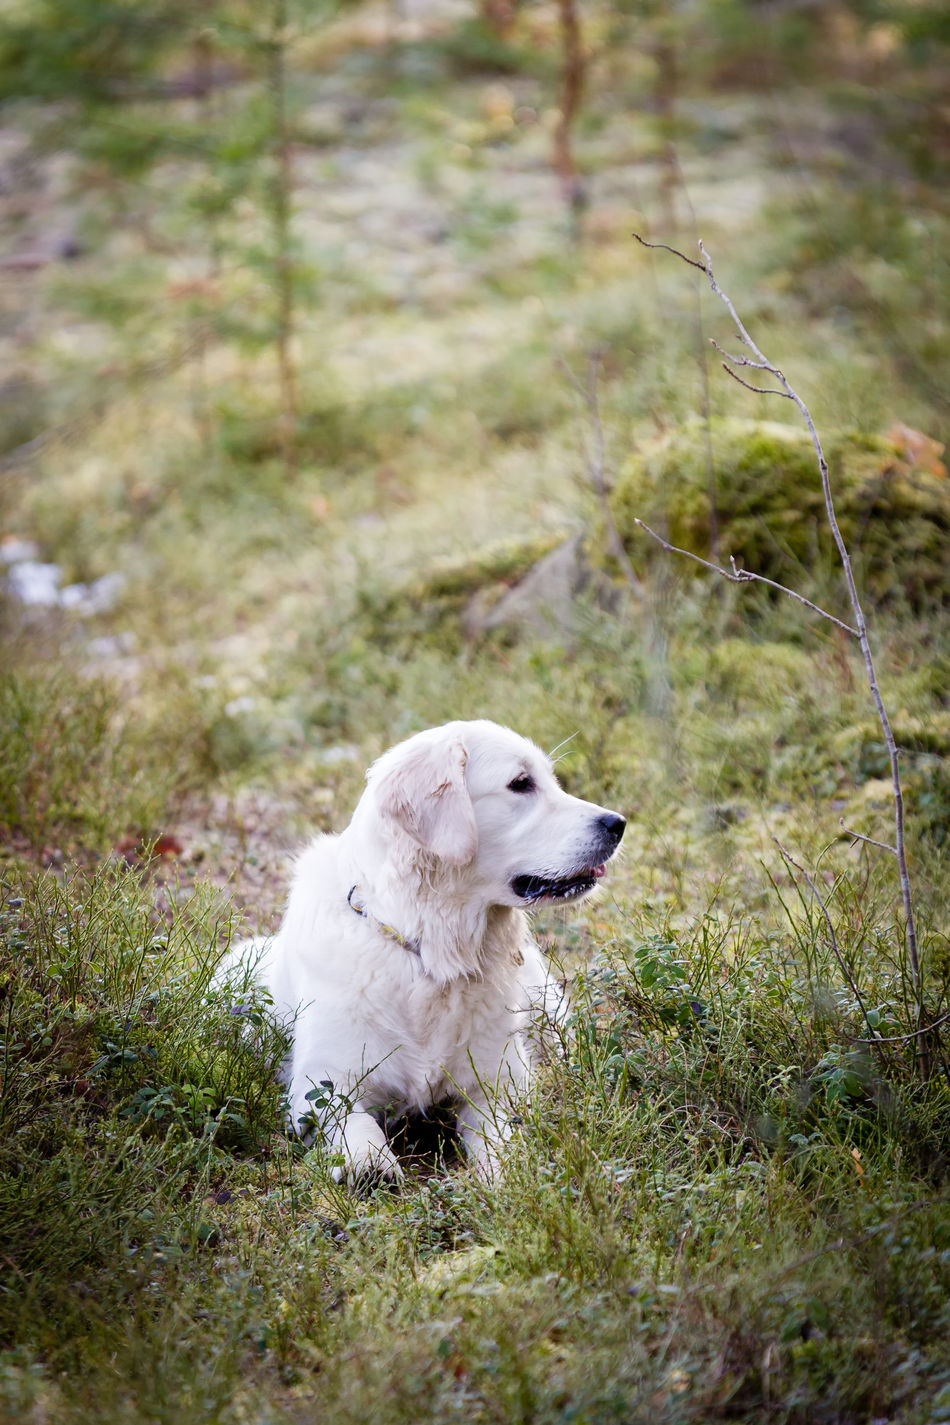 Beautiful Cheerful Cute Cute Pets Dog Fluffy Forest Friend Friendly Fur Golden Retriever Happy Lovely Outdoor Life Outdoors Pedigree Pet Pets Spring White Young